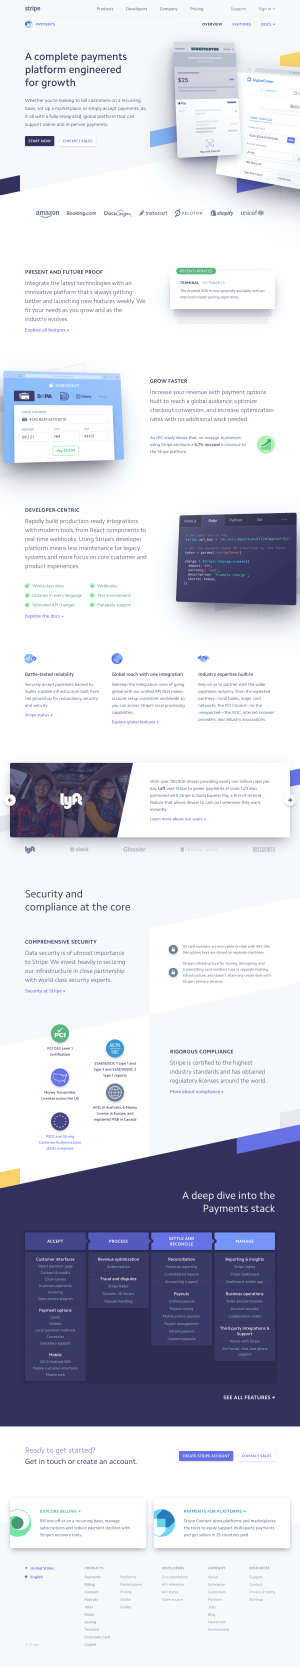 Stripe - Features page 3